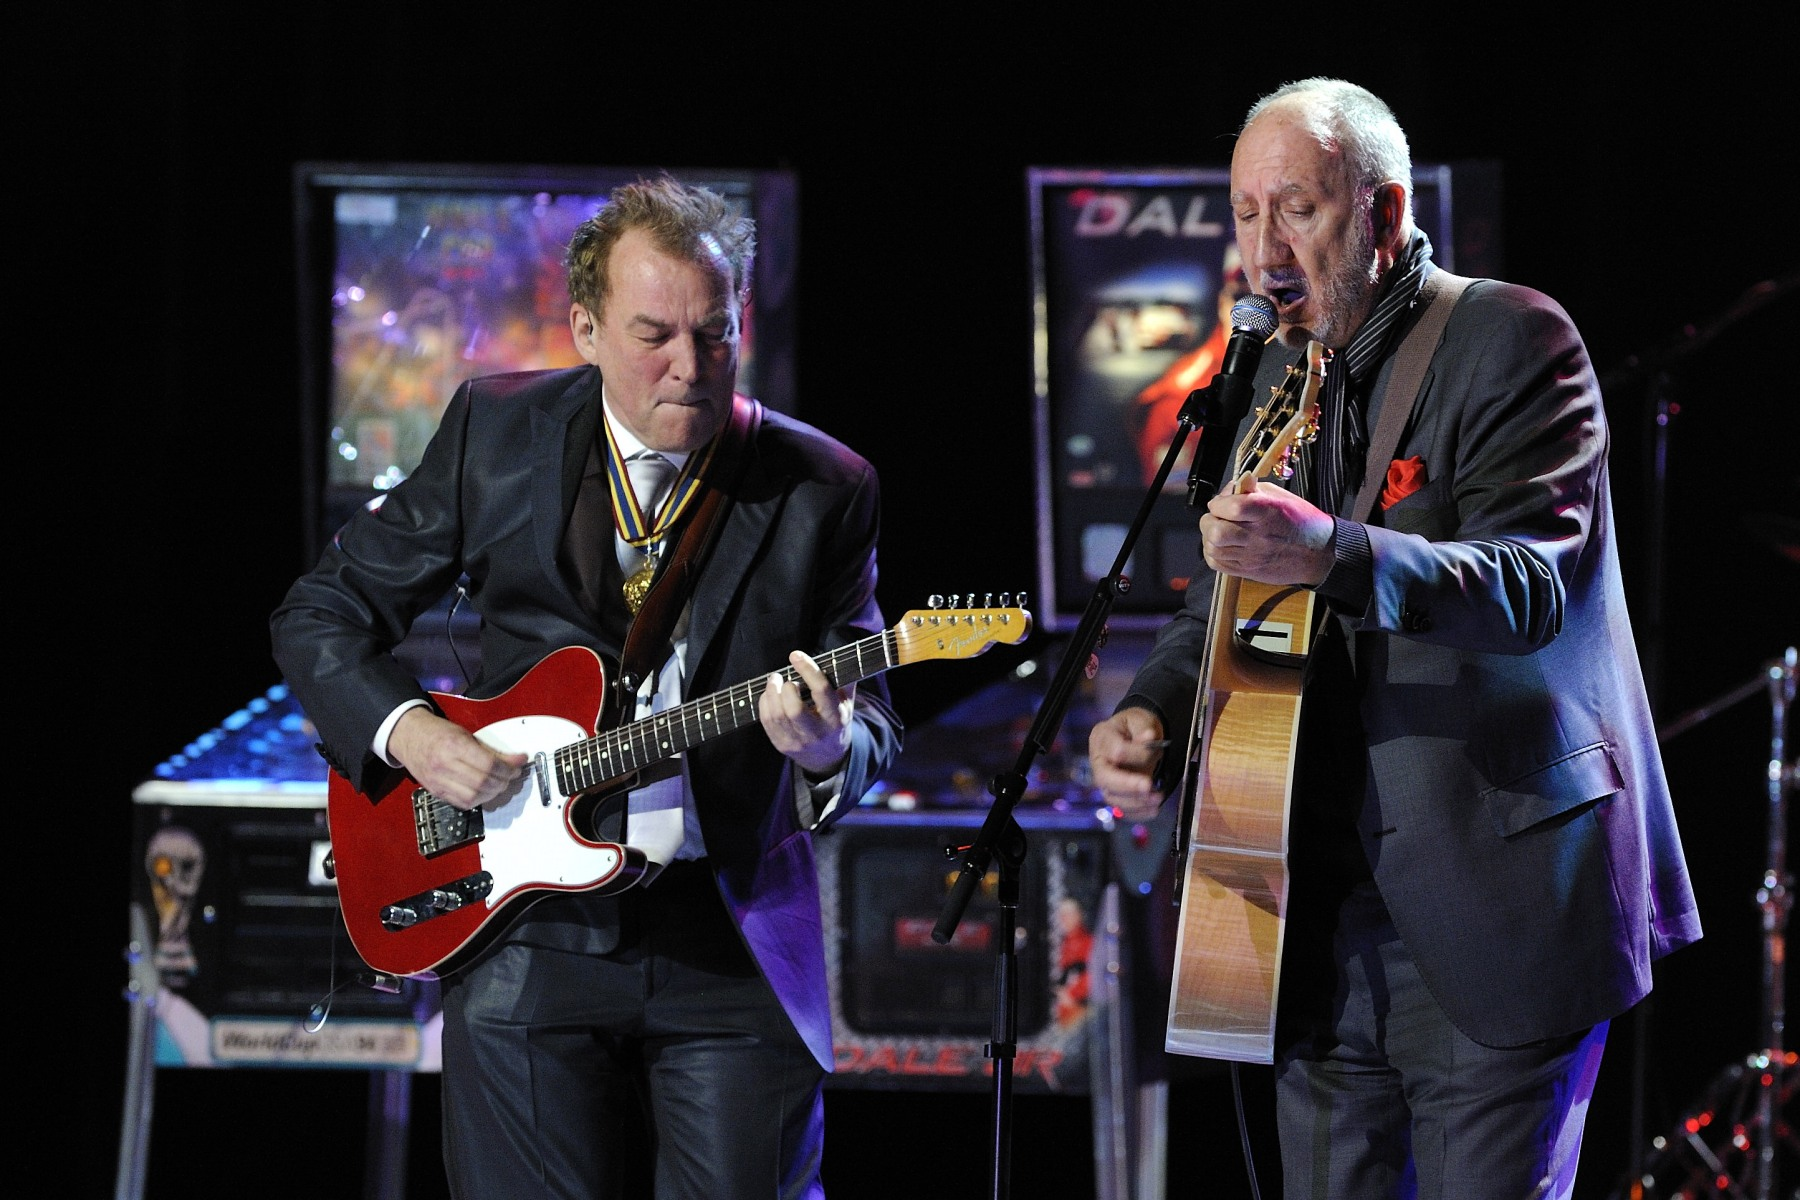 Pete Townshend (from The Who) joined Des McAnuff, 2012 National Arts Centre Award Laureate, on stage.